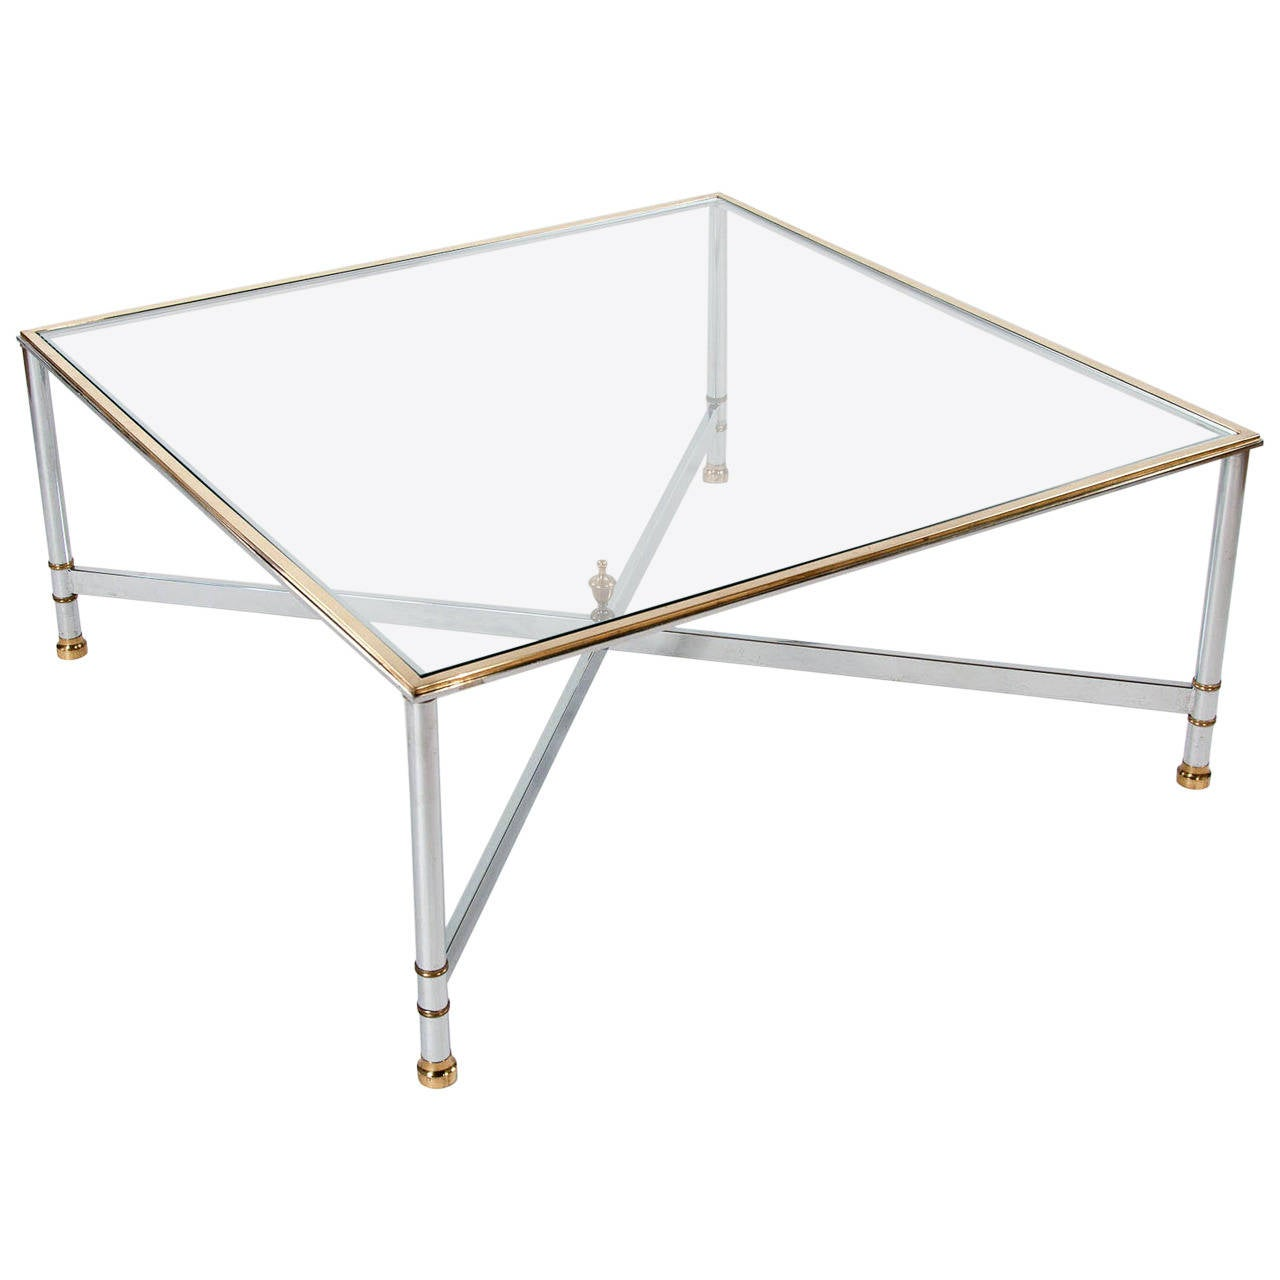 1970s Large Square Glass Coffee Table At 1stdibs